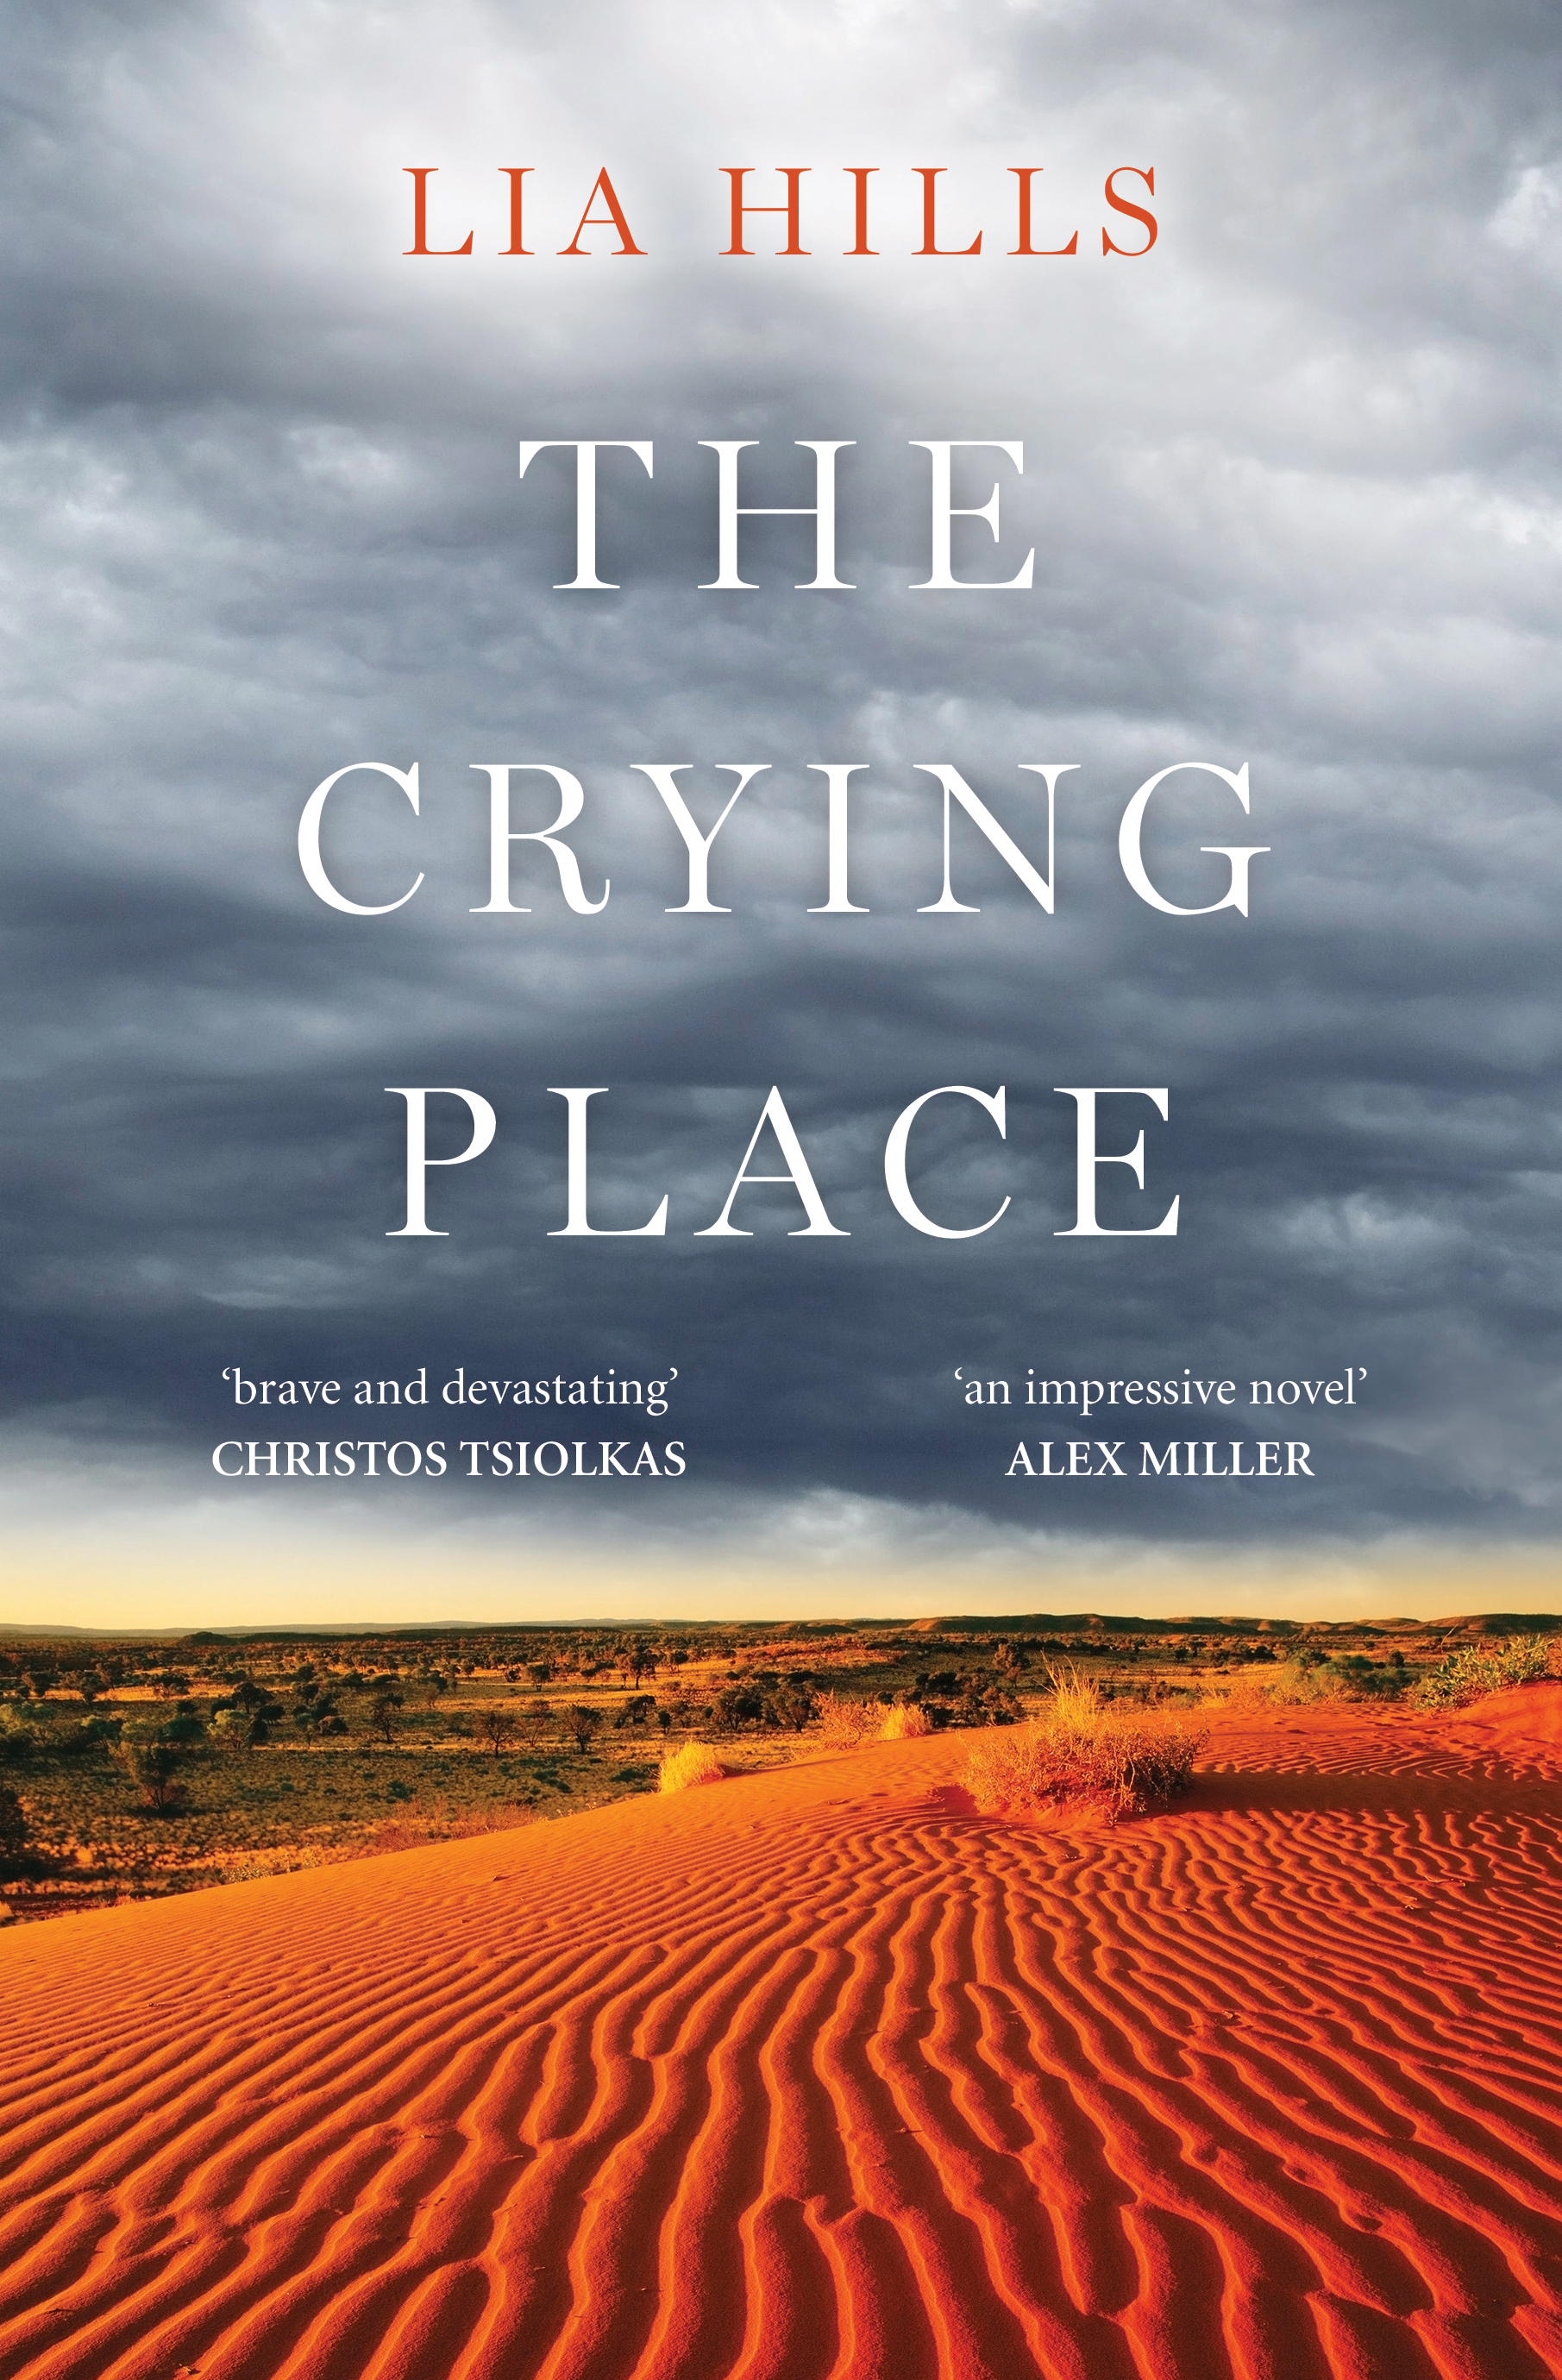 Cover image of the book, 'The Crying Place' by Lia Hills